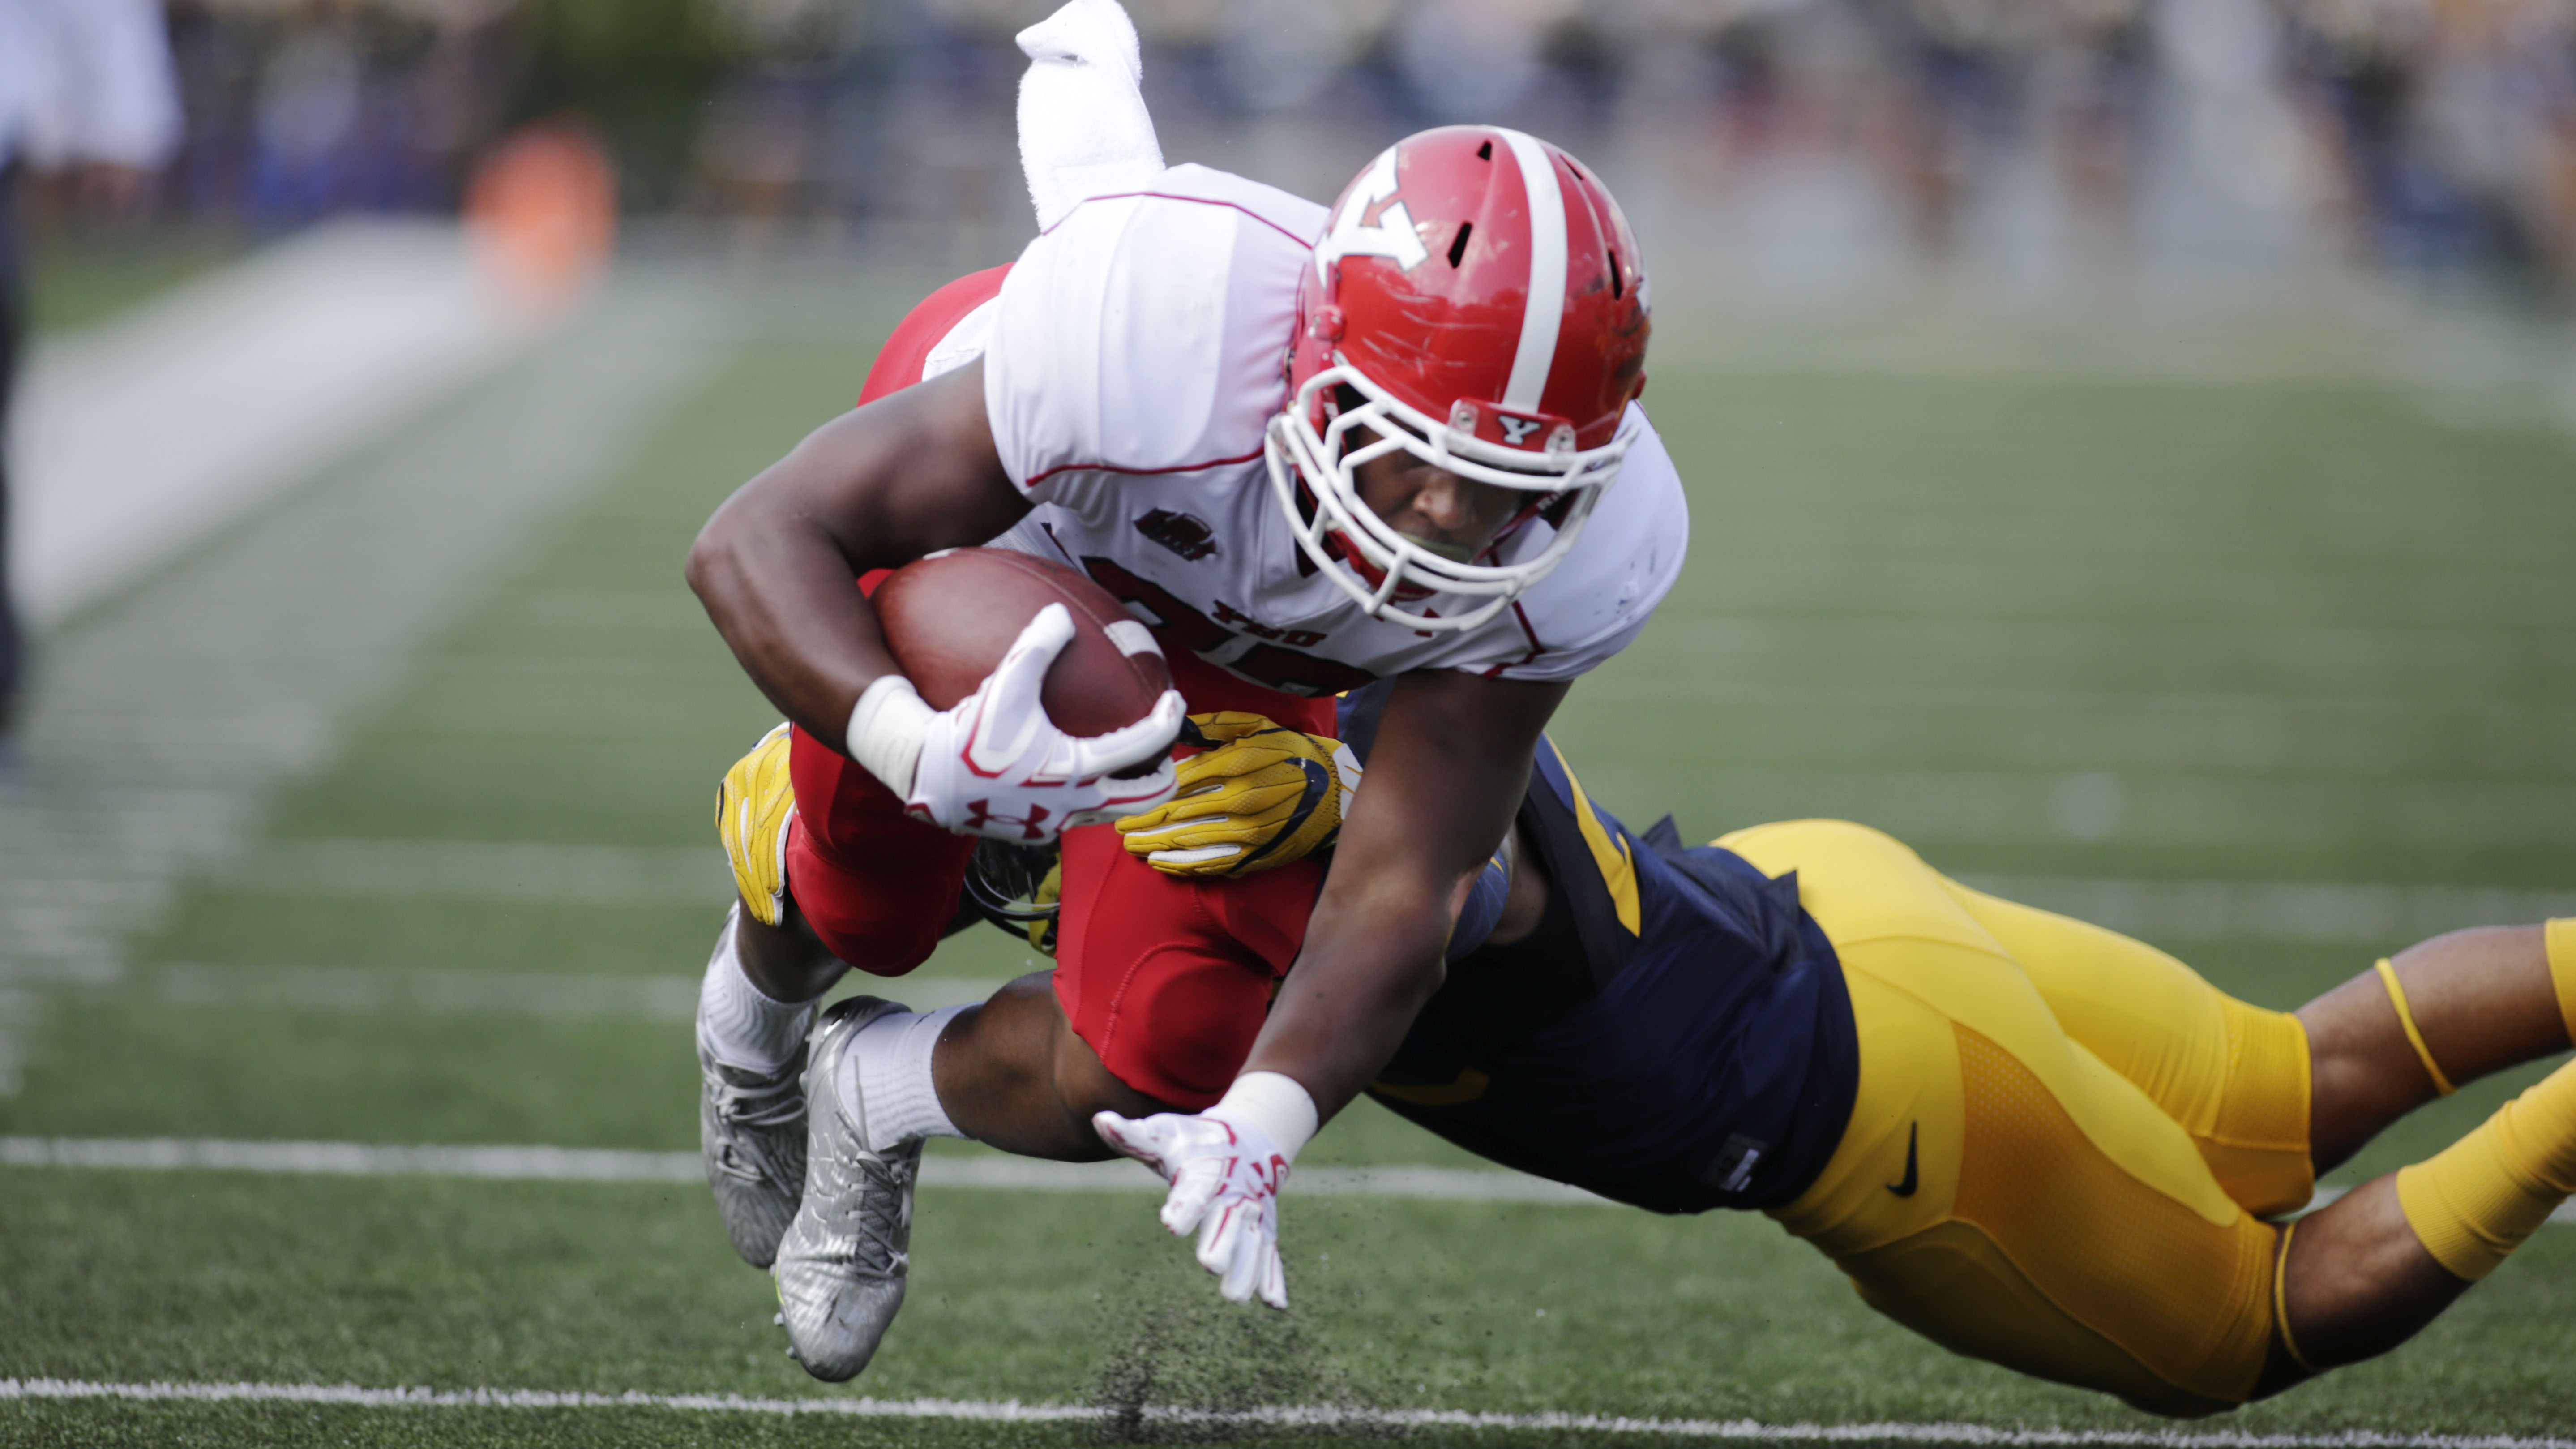 Youngstown State running back Tevin McCaster (37) is tackled by West Virginia safety Jarrod Harper (22) during the first half of an NCAA college football game, Saturday, Sept. 10, 2016, in Morgantown, W.Va. (AP Photo/Raymond Thompson)